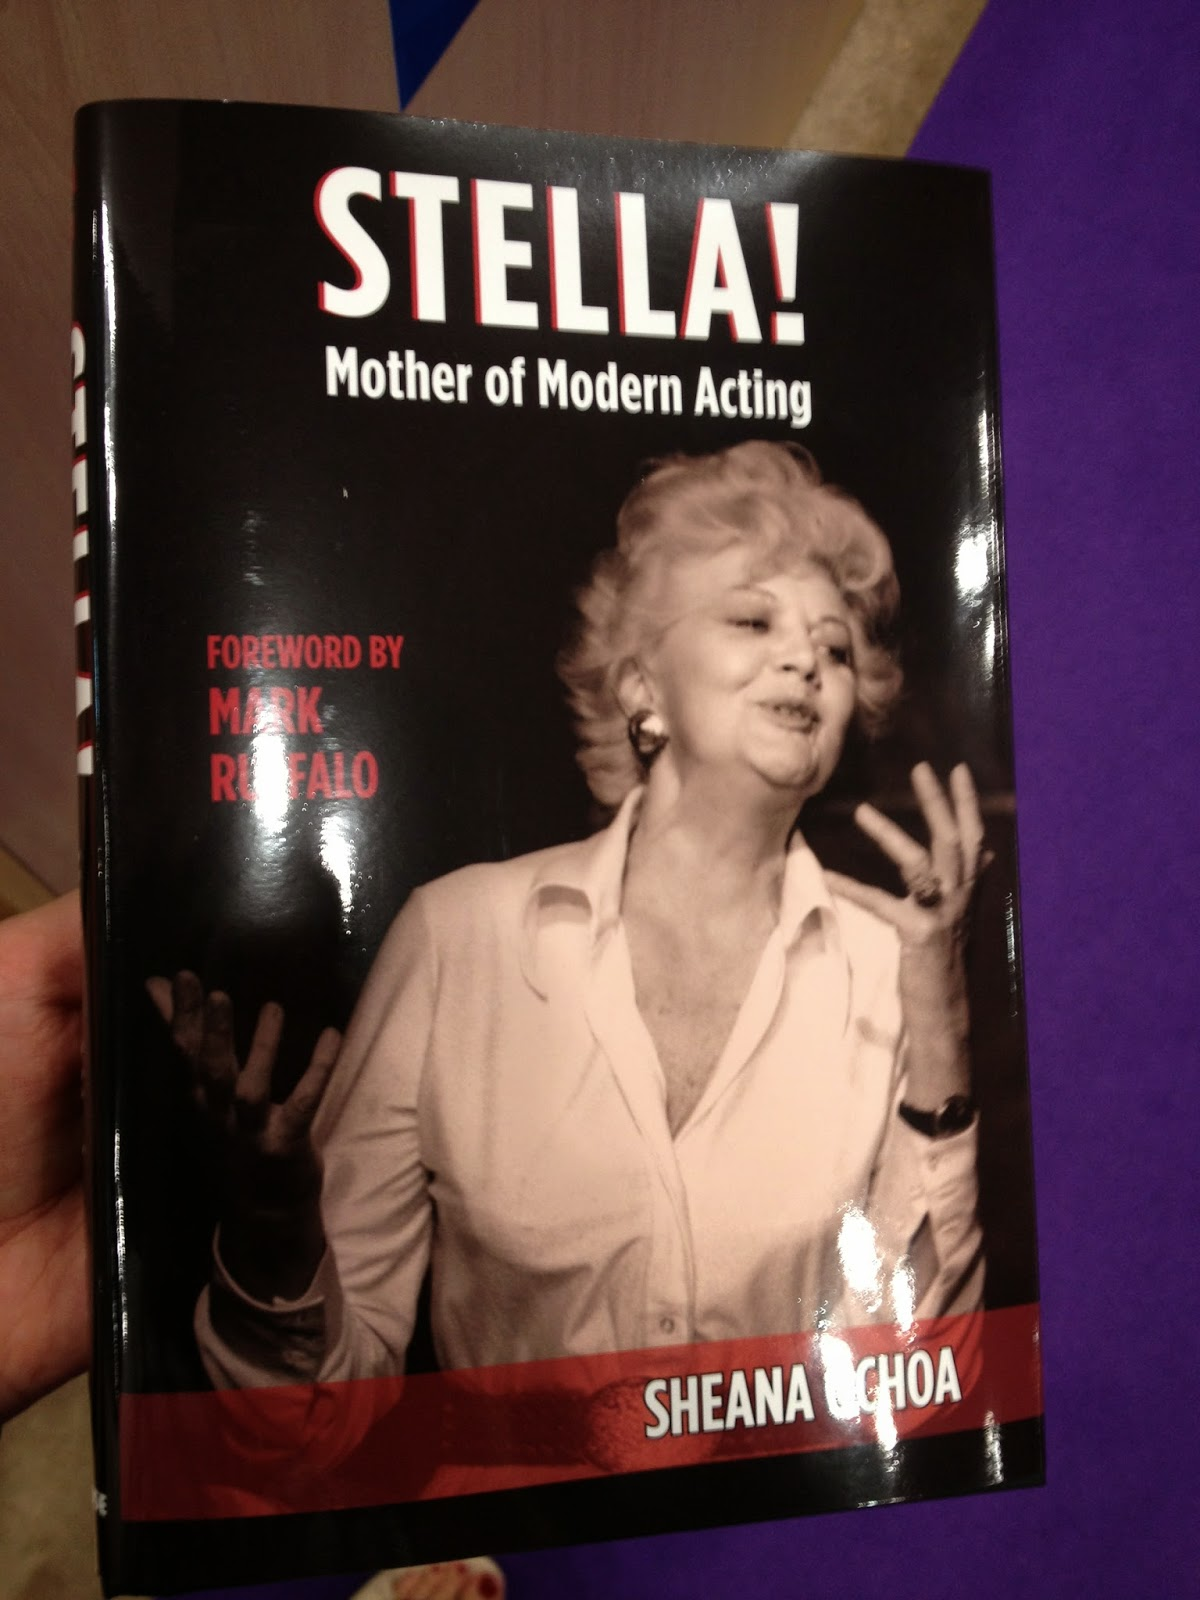 A copy of Stella! Mother of Modern Acting